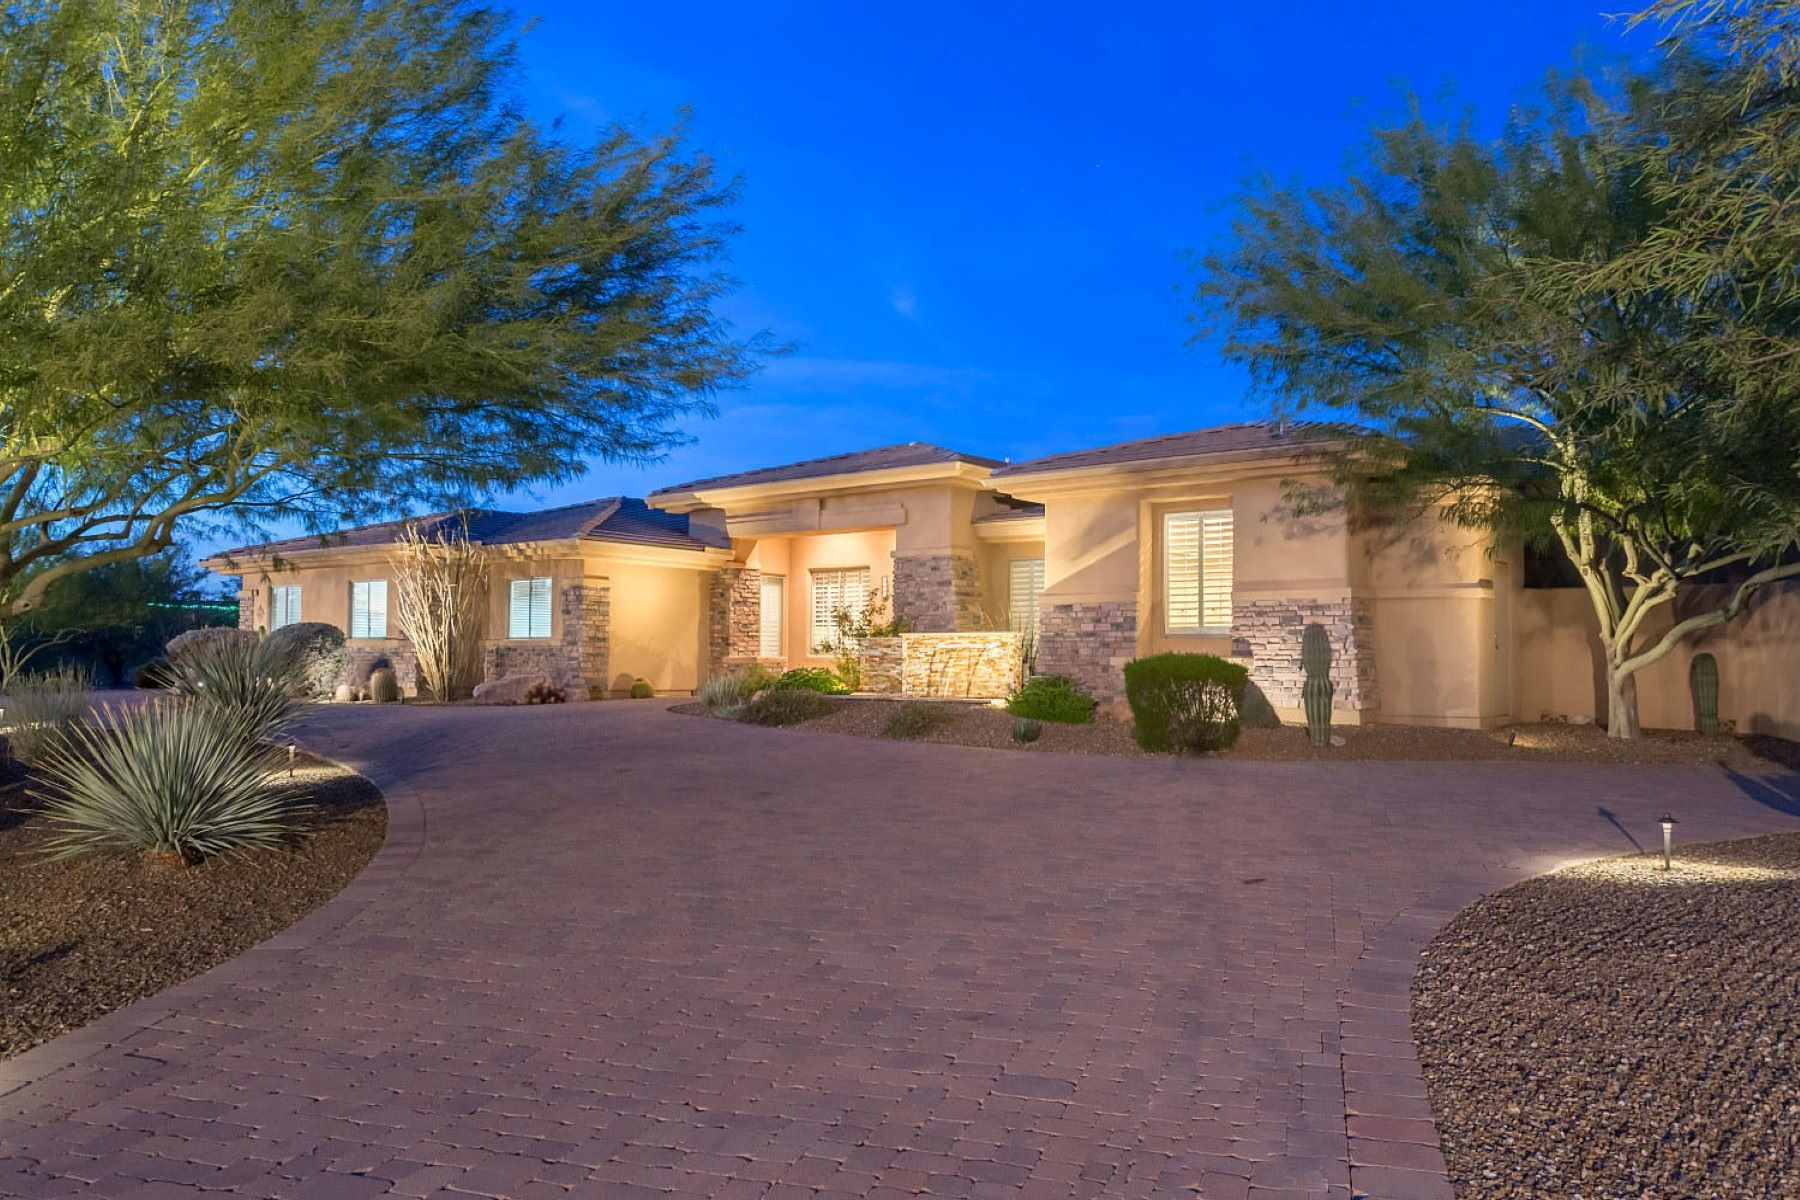 Single Family Home for Sale at Pristine estate on over 1.5 acres with sweeping mountain views 9002 E Rimrock Dr Scottsdale, Arizona, 85255 United States